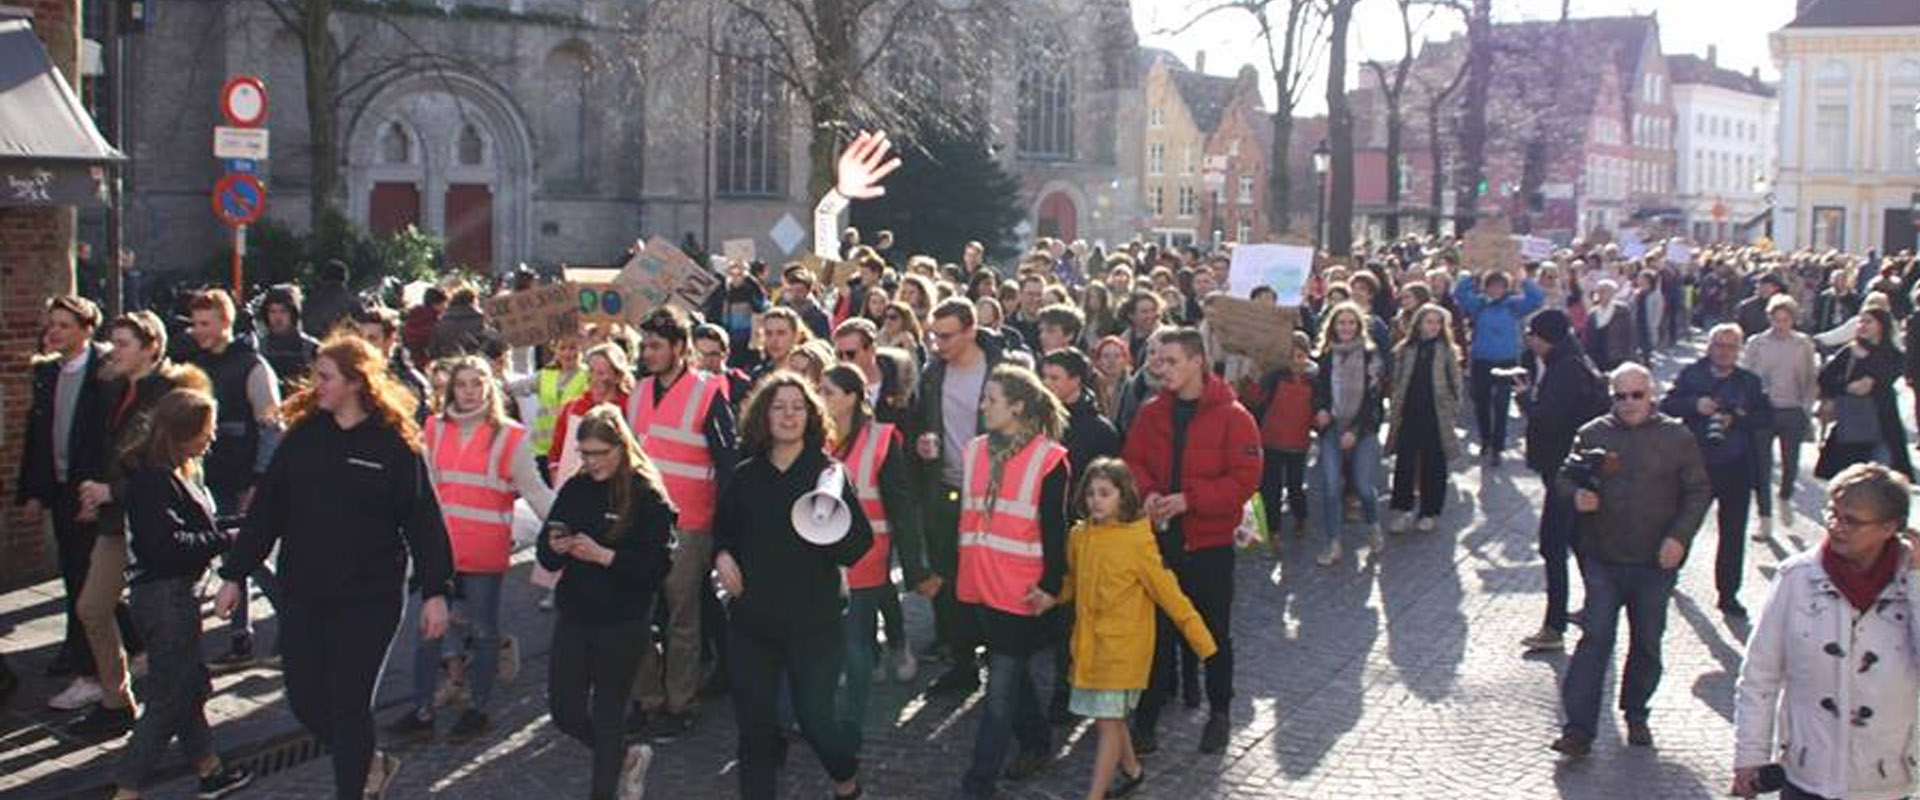 Global strike for Future: 400 in Brugge, 30.000 in Brussel